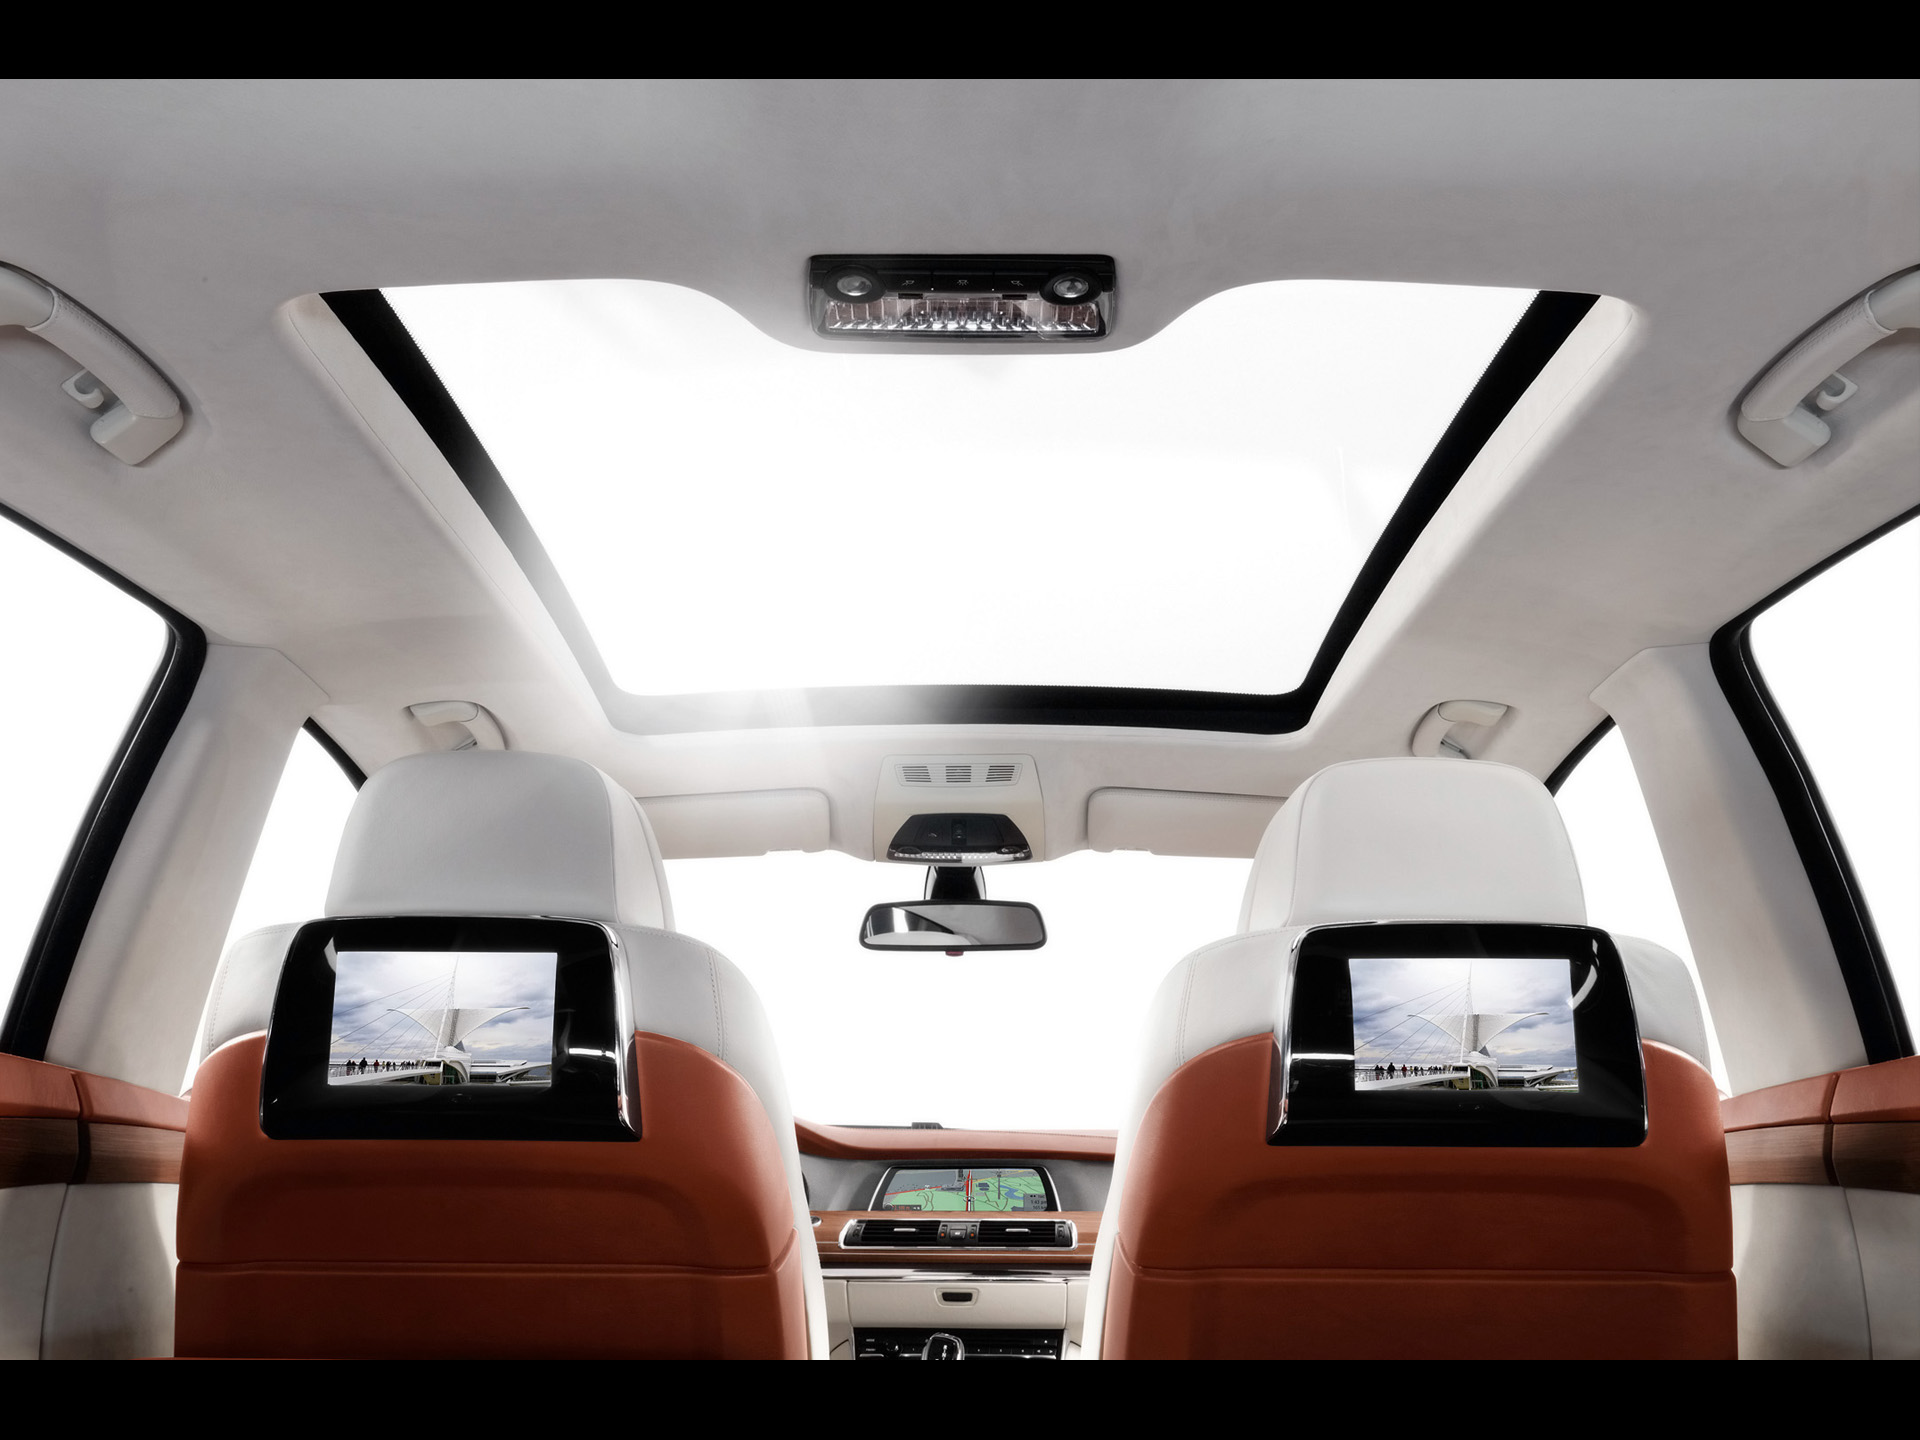 2009 BMW Concept 5 Series Gran Turismo Panorama Glass Roof 2 1920x1440